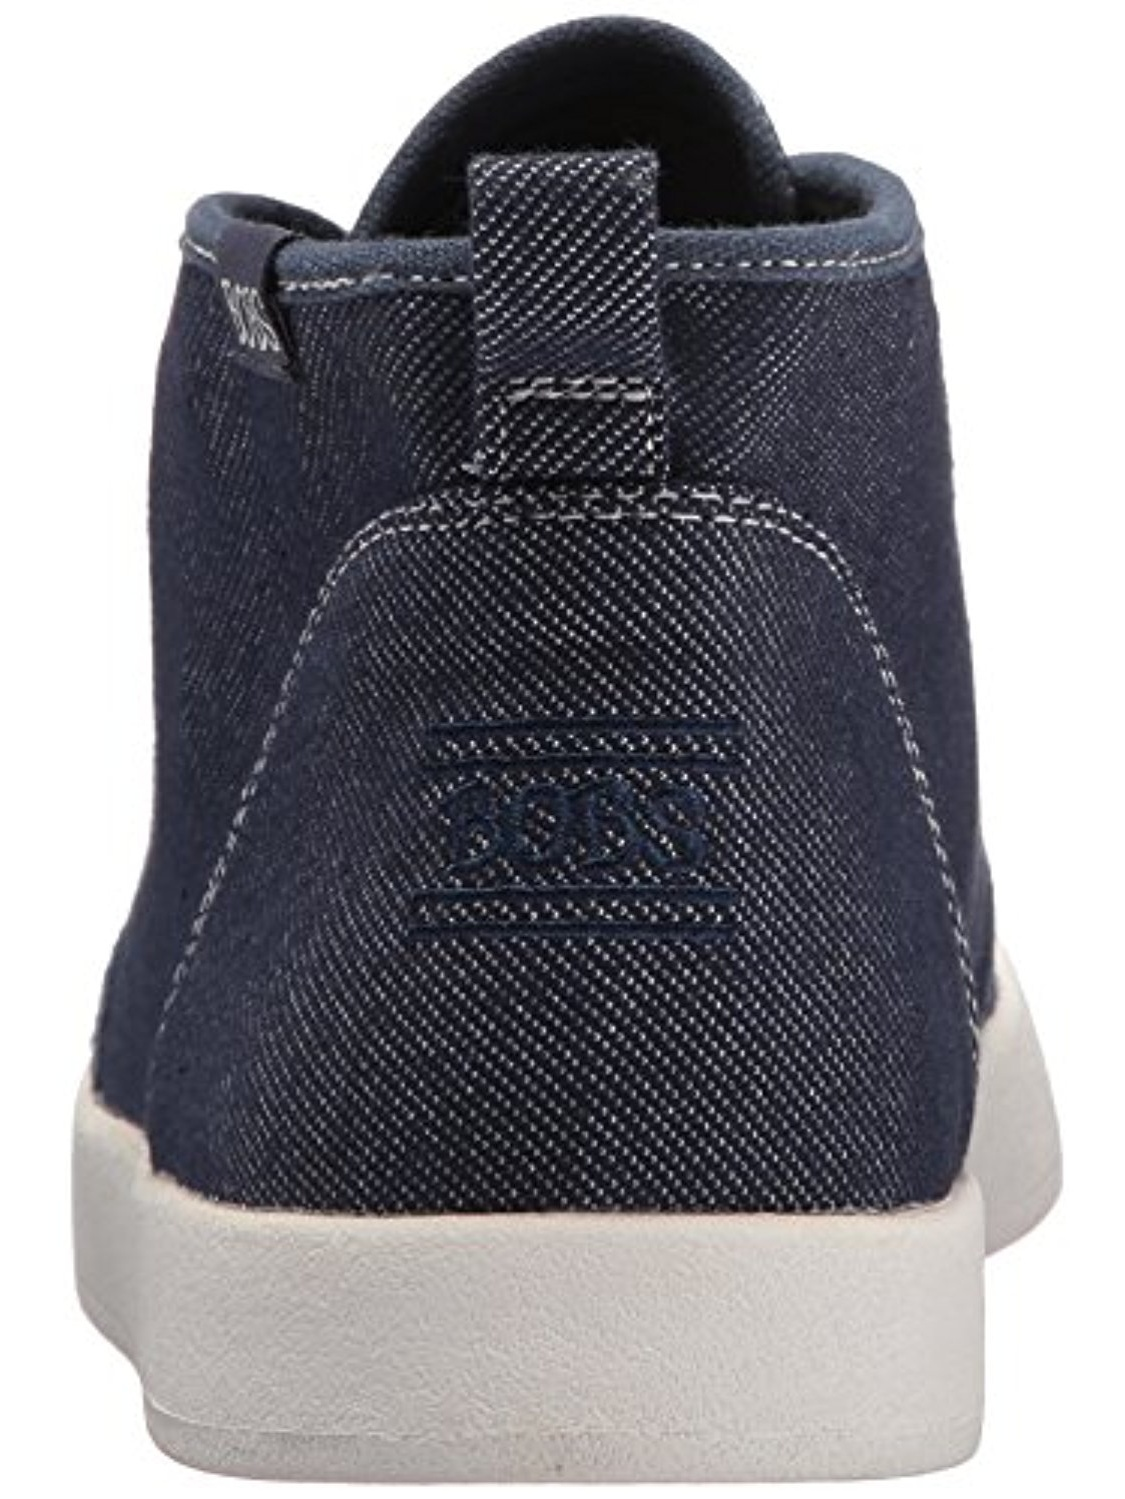 BOBS from Skechers Women's Bobs B-Loved-Fame Time Ankle Bootie, Denim, 7.5 M US